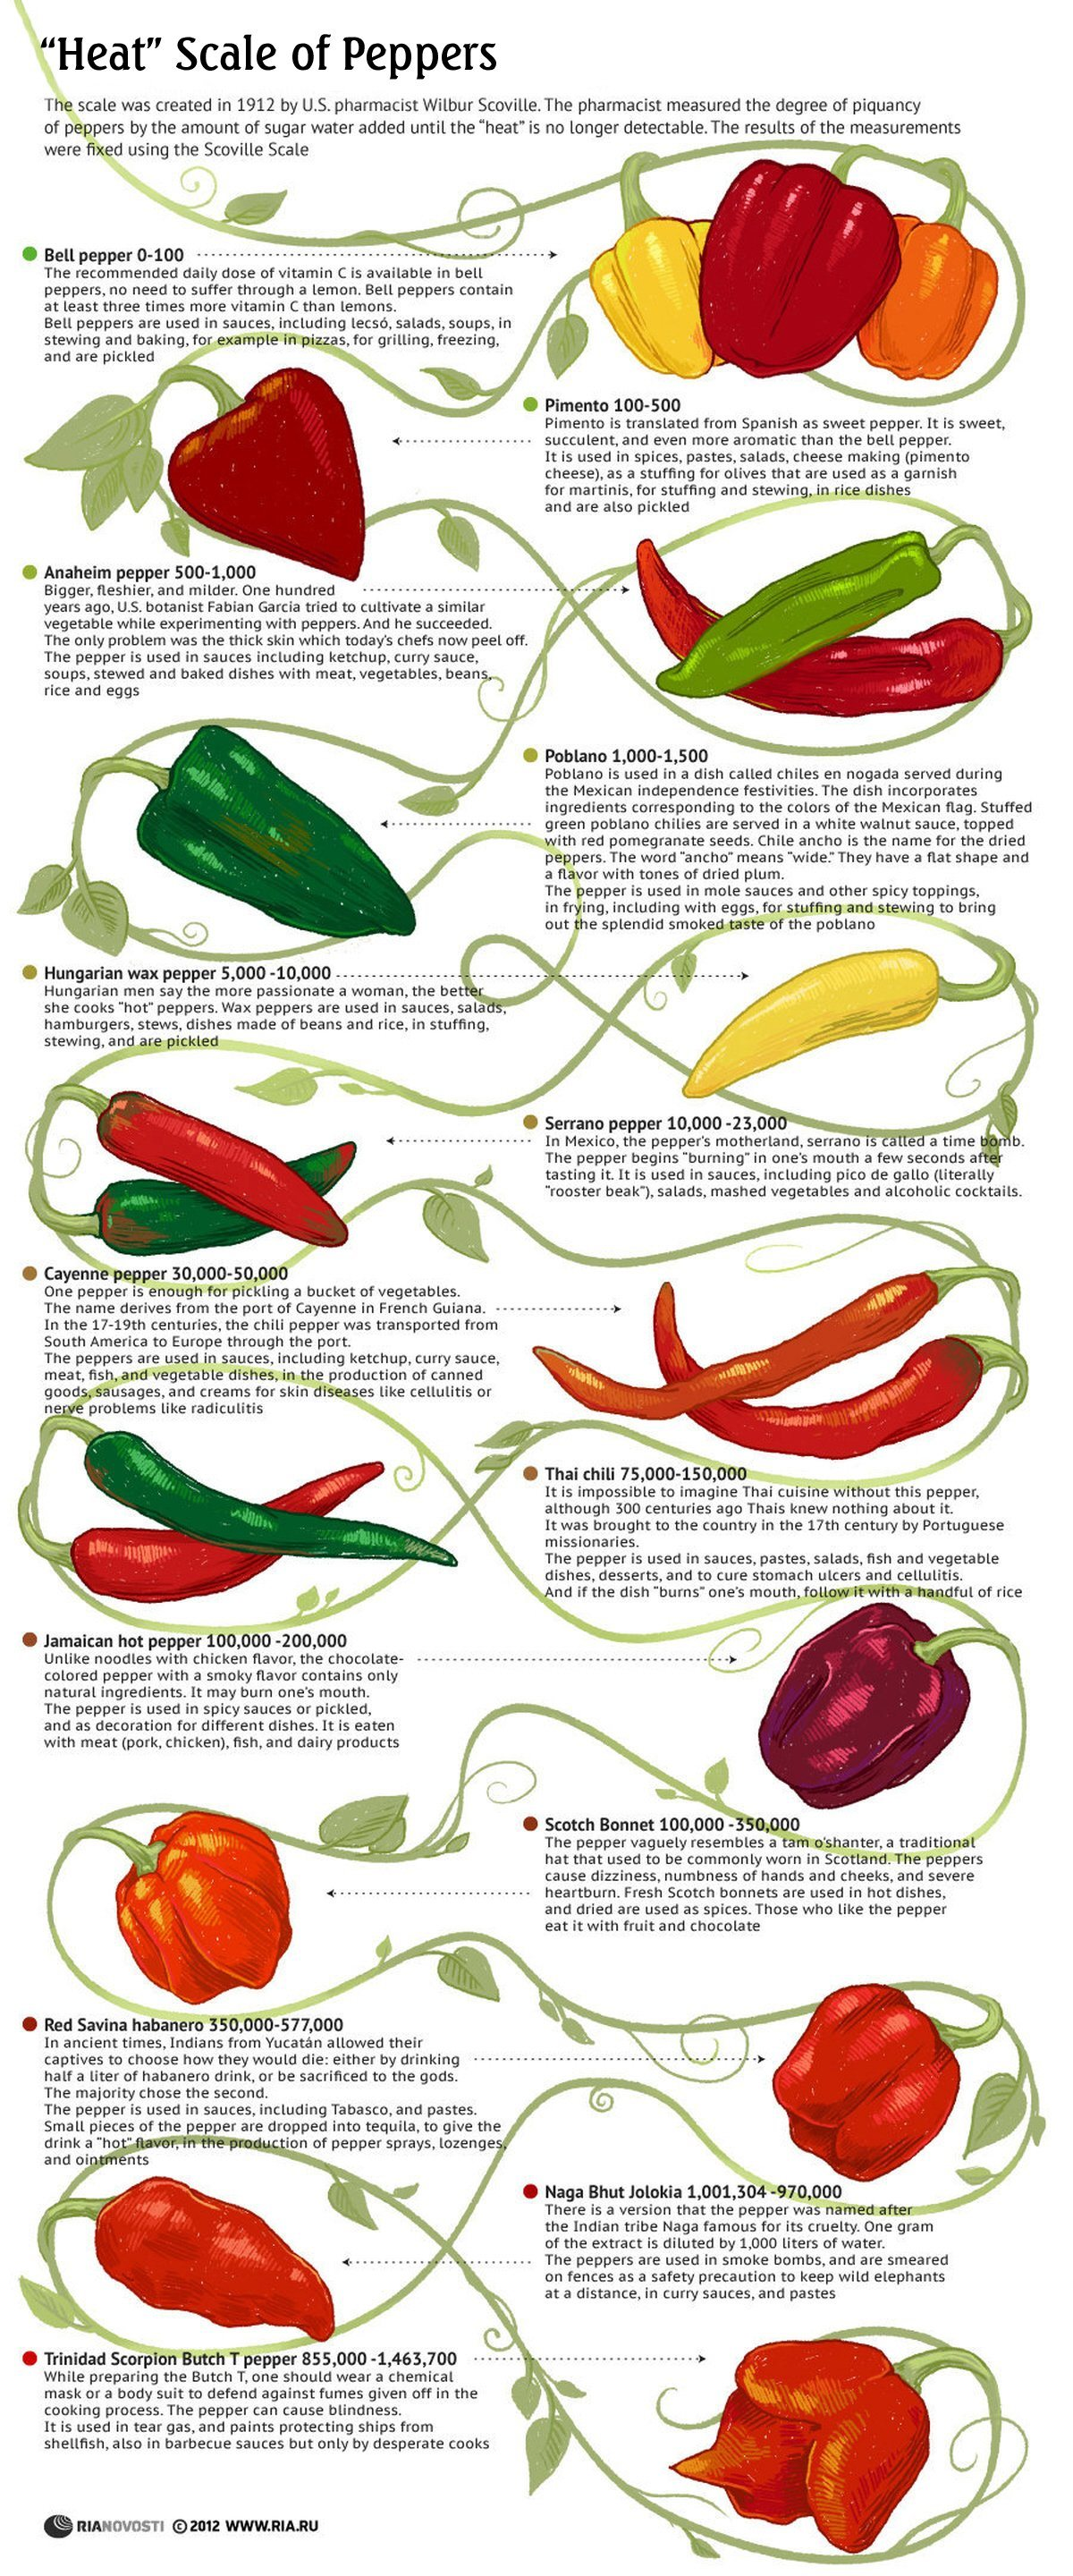 Know the heat scale of peppers